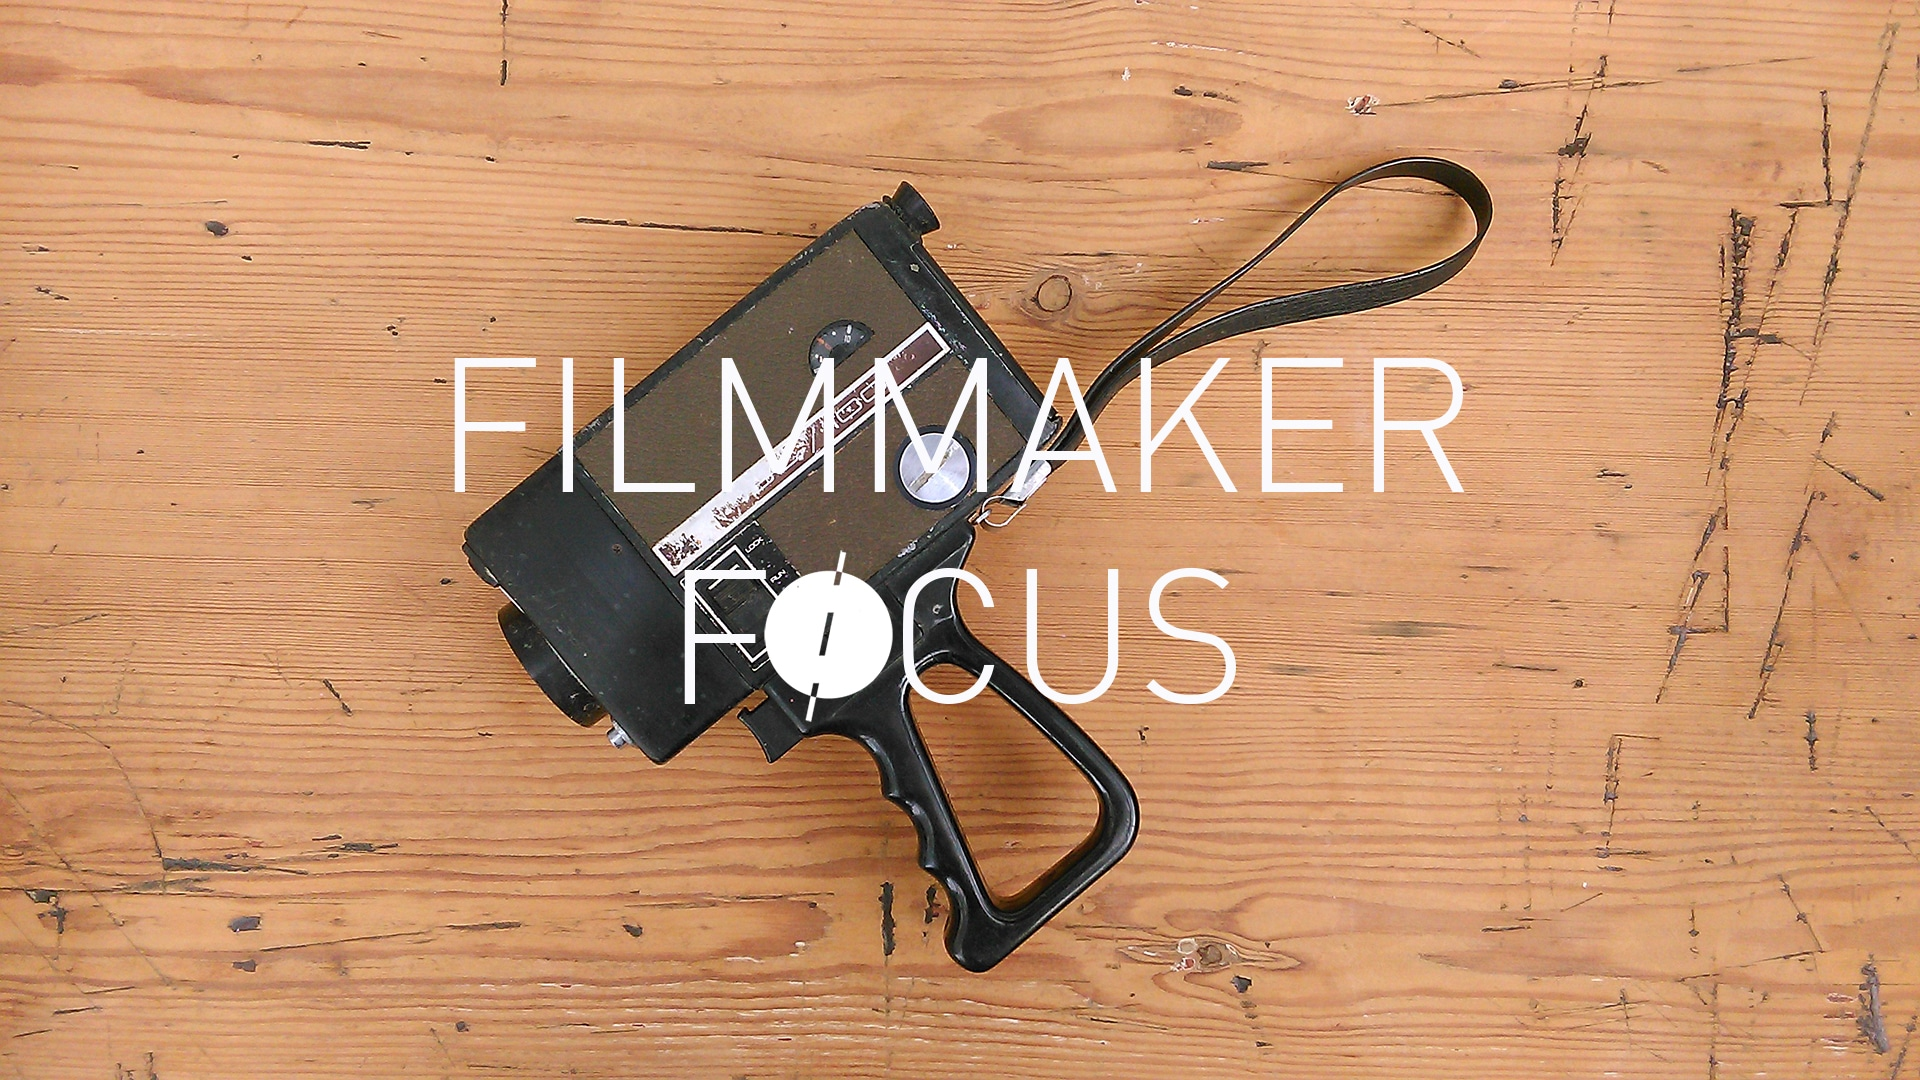 FILMMAKER FOCUS SOUND and VISION